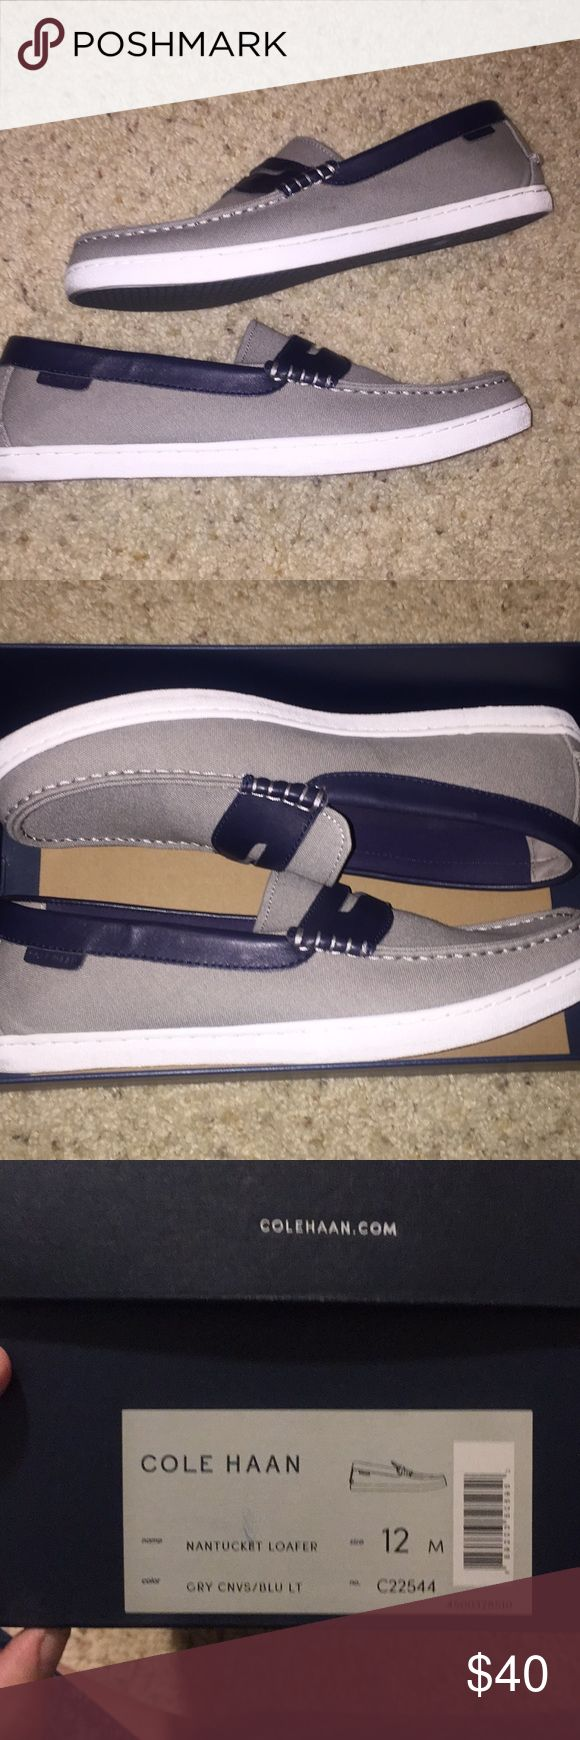 Very very gently used men's Cole Haan Cole Haan loafers worn twice Cole Haan Shoes Loafers & Slip-Ons